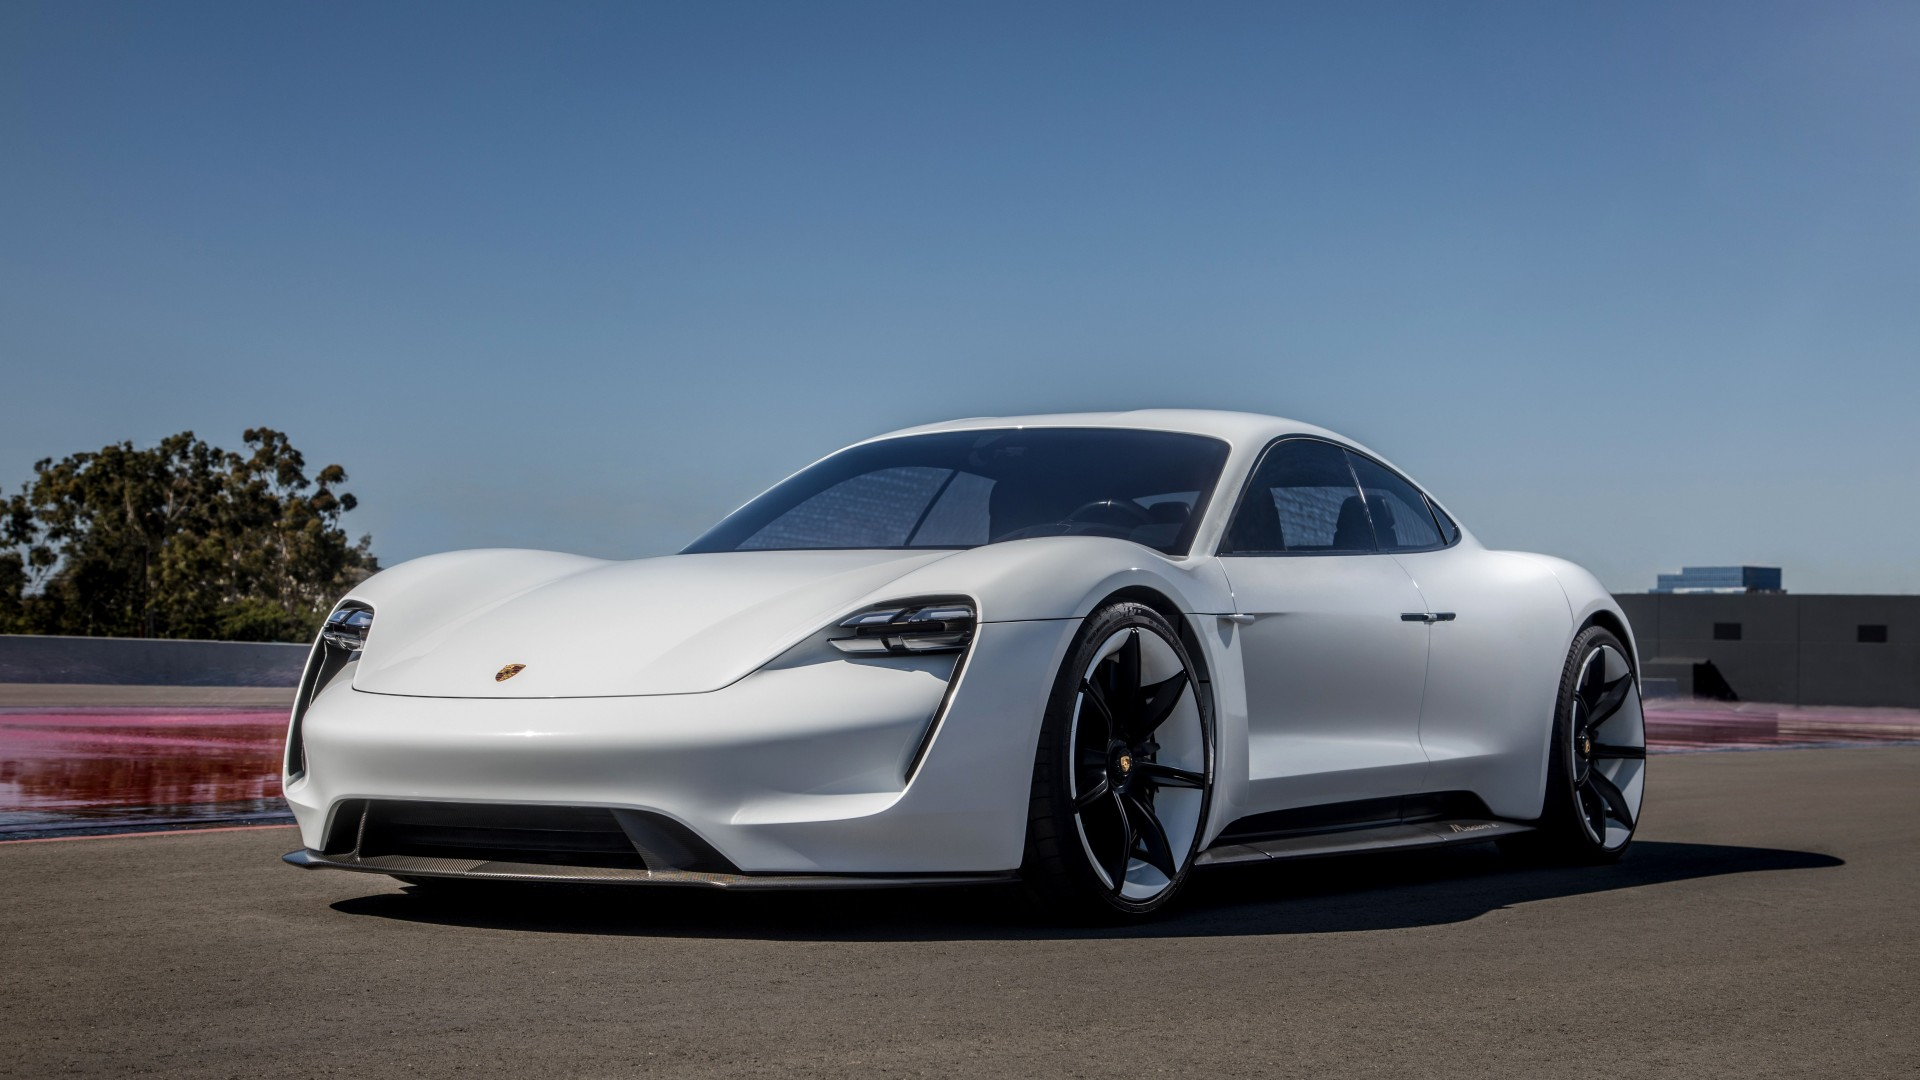 Wallpaper Porsche Taycan Electric Car Supercar 2020 Cars 4k